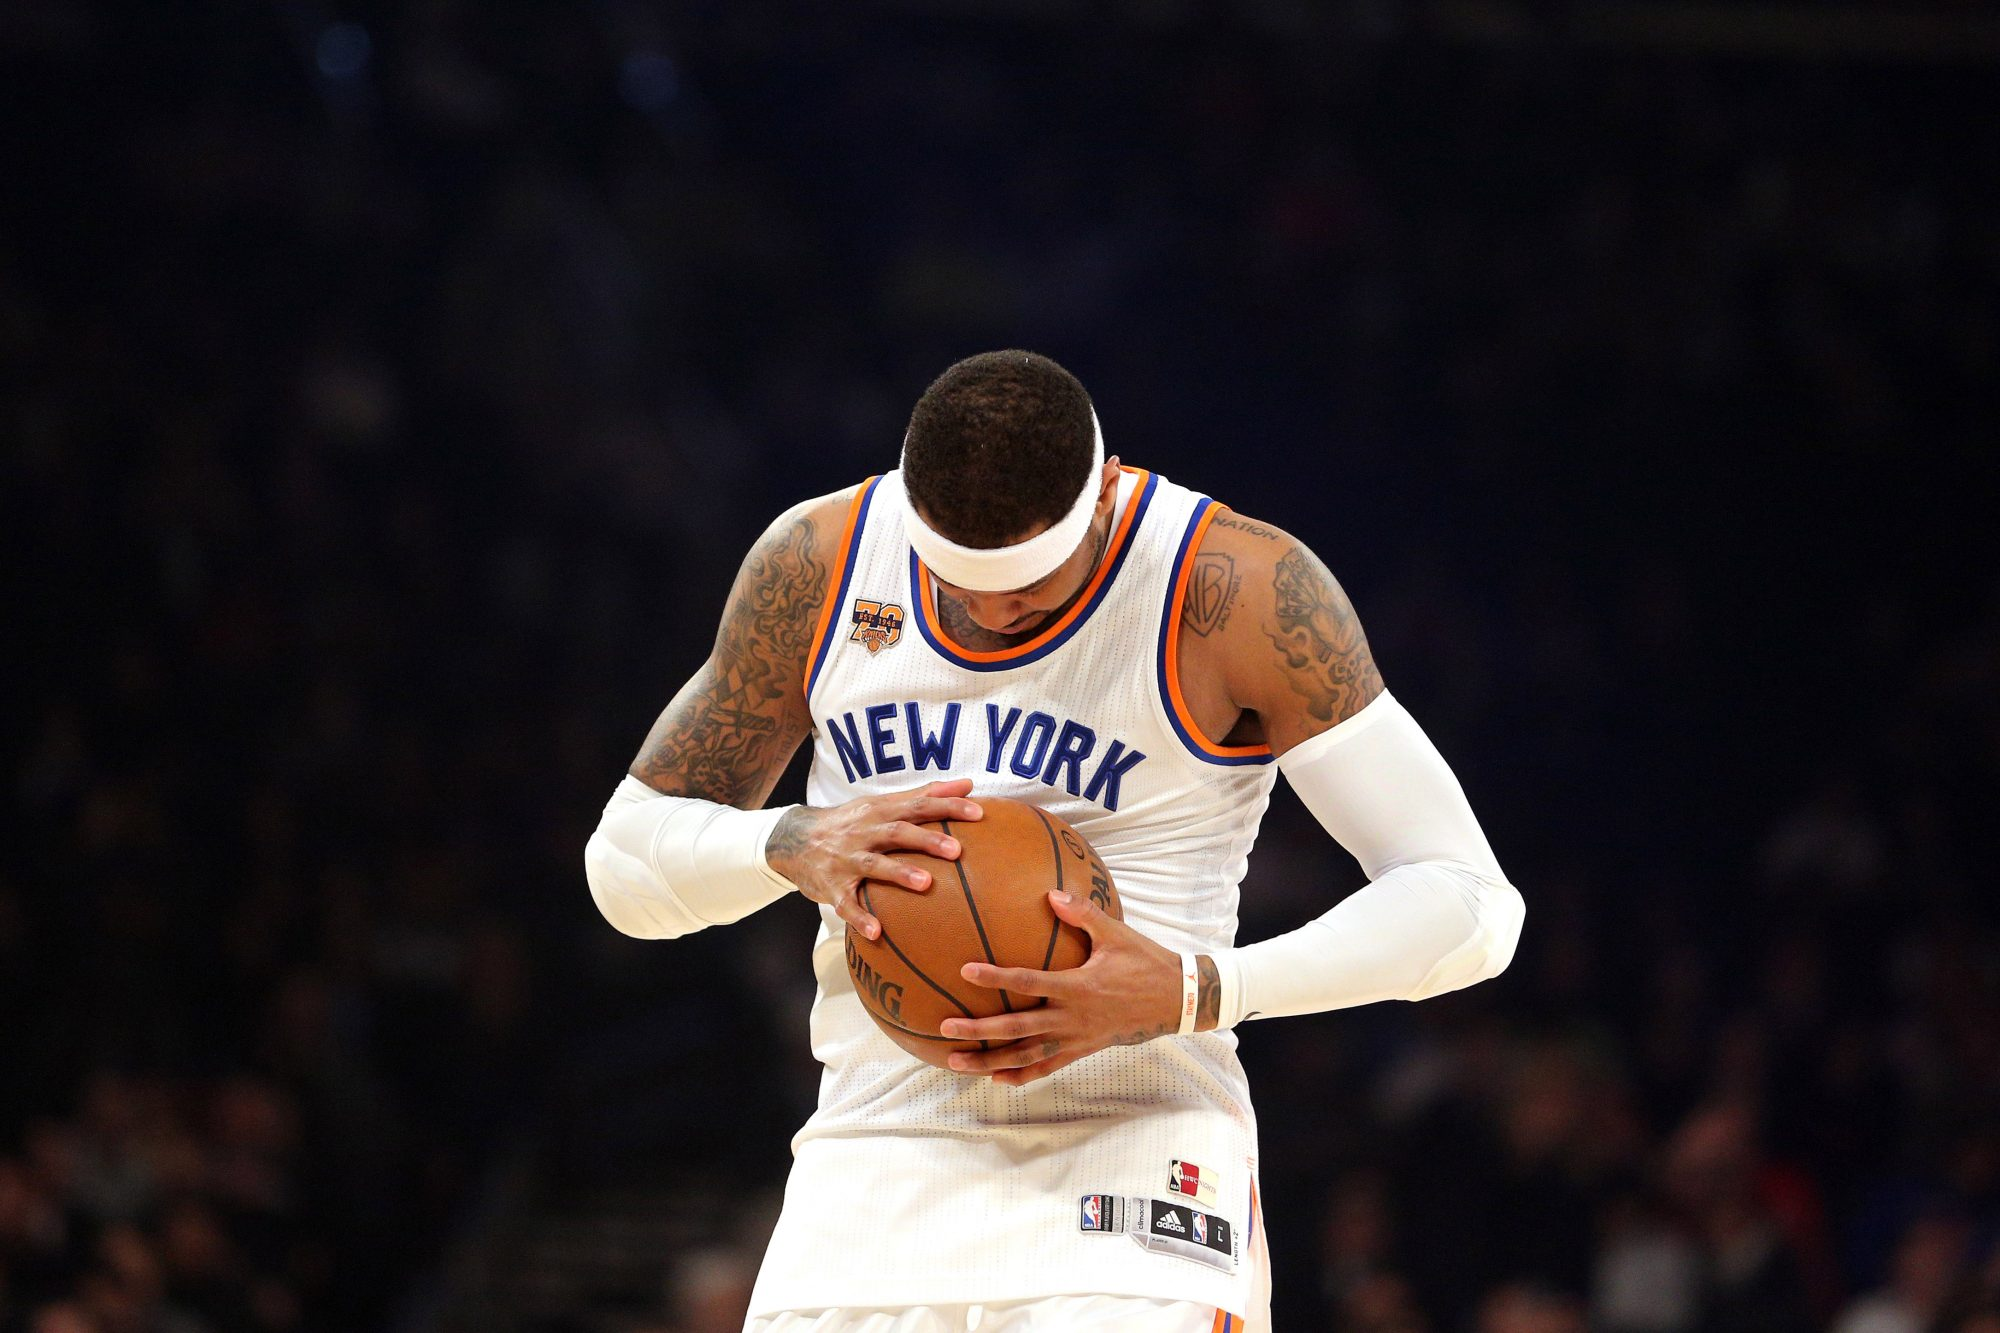 Every Sign Is Present That Carmelo Anthony Is Putting His New York Knicks Career To an End